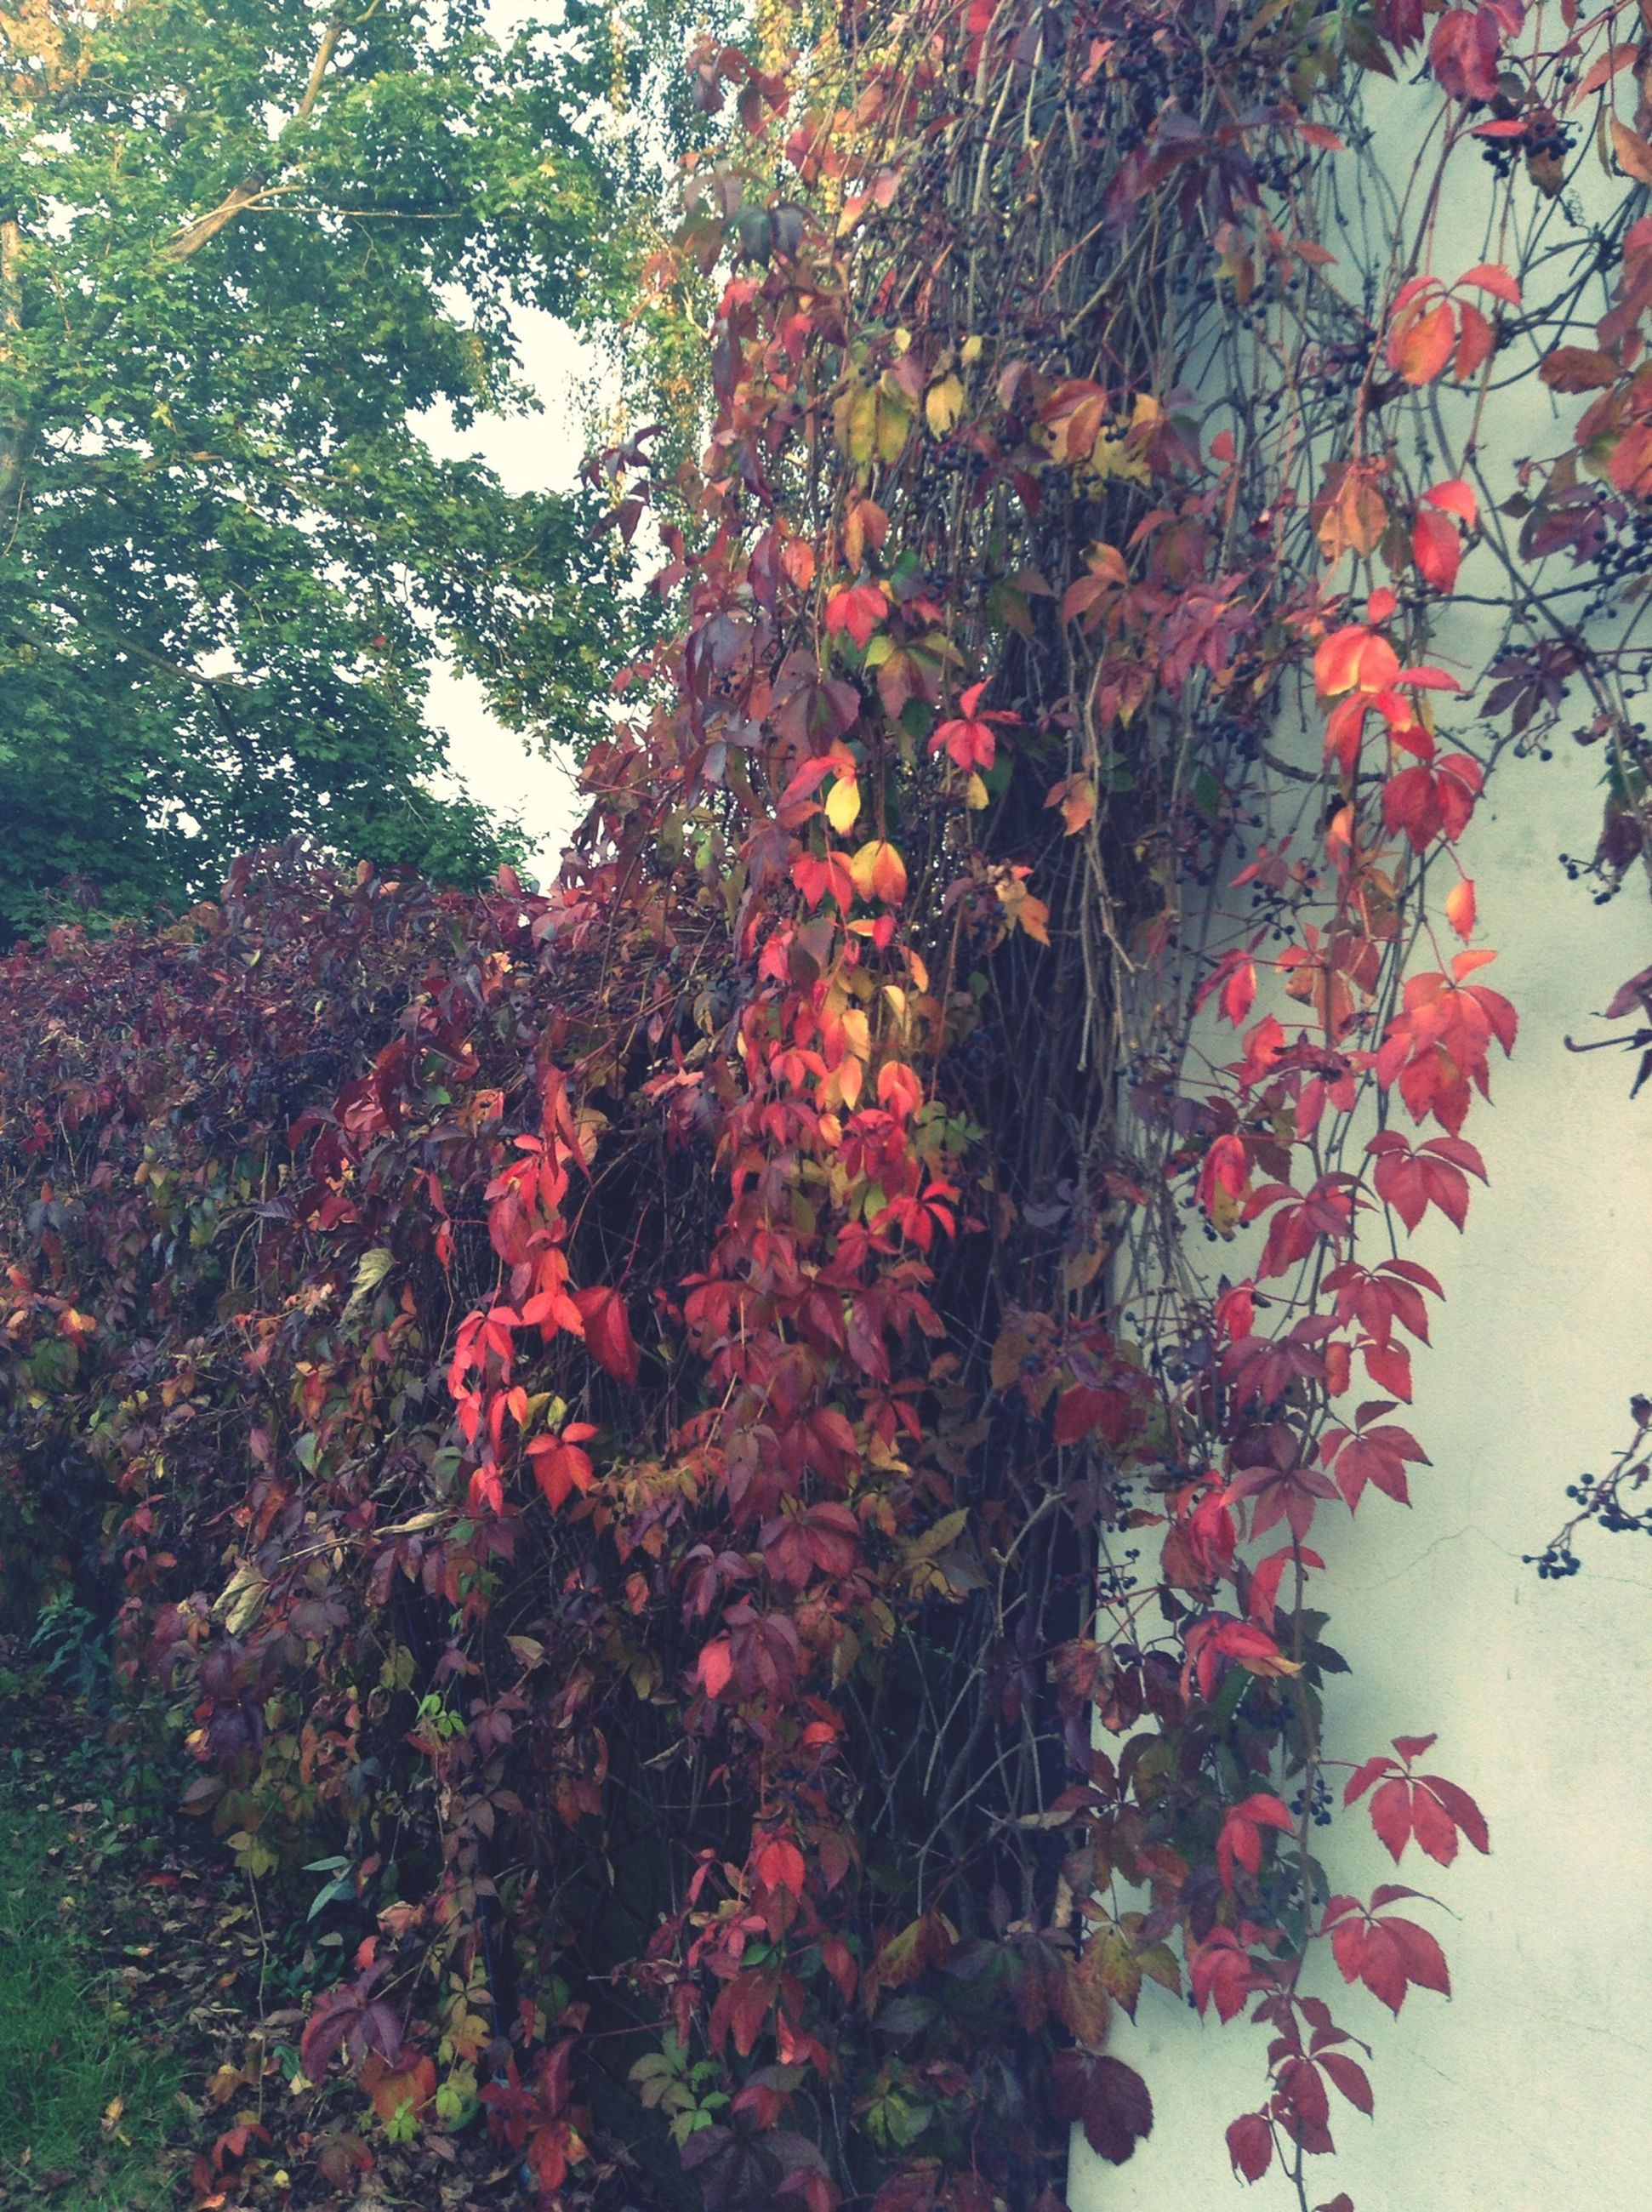 leaf, growth, tree, branch, autumn, red, nature, change, plant, orange color, beauty in nature, season, day, low angle view, no people, growing, outdoors, wall - building feature, sunlight, tranquility